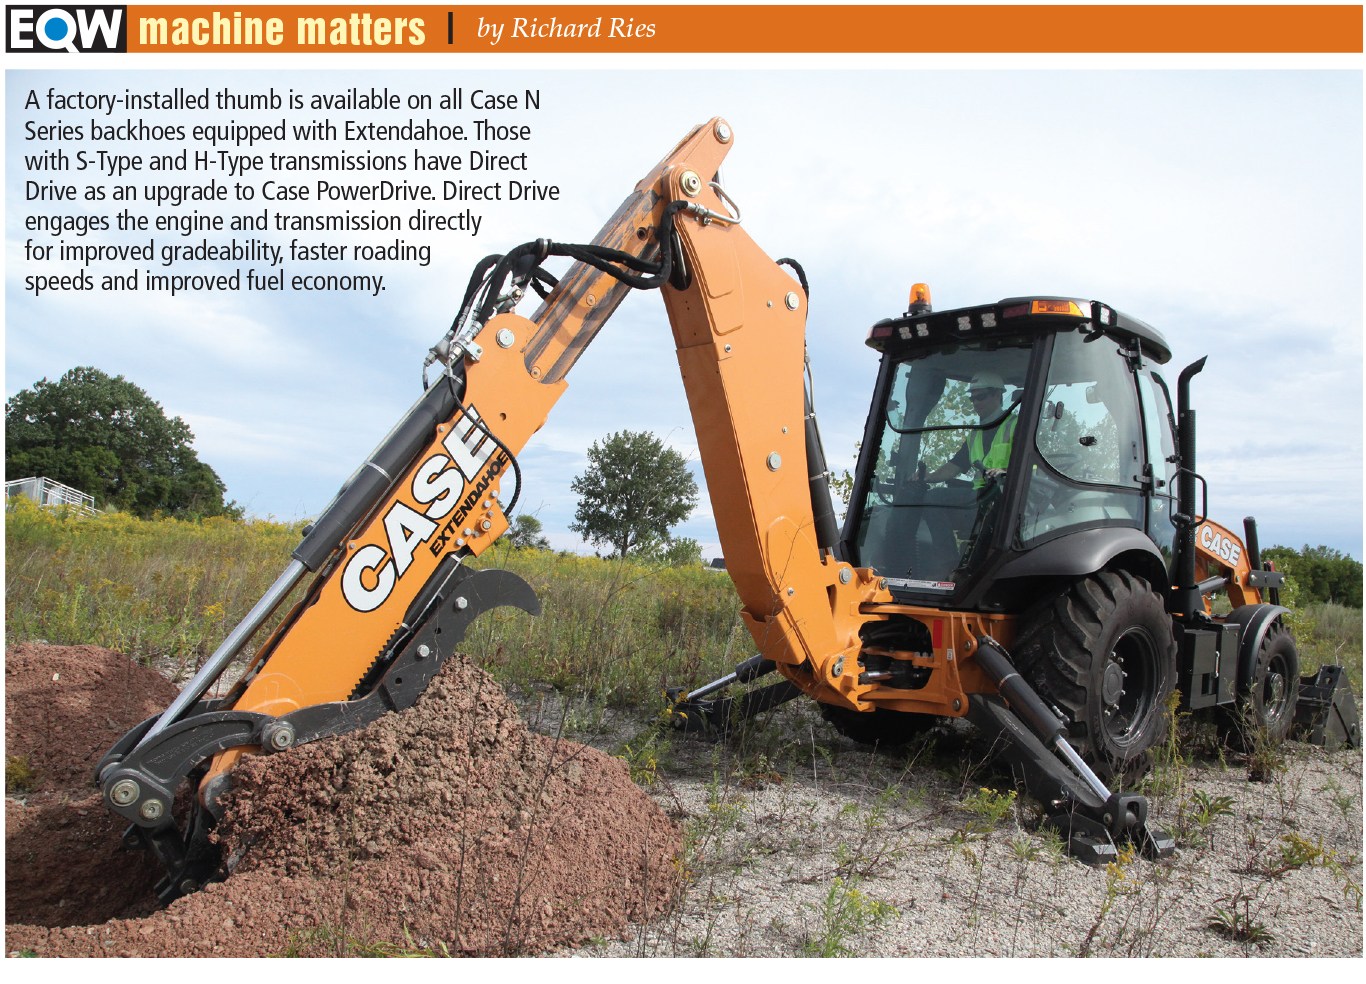 Backhoe bounce-back? OEMs declare rebound underway with improved features